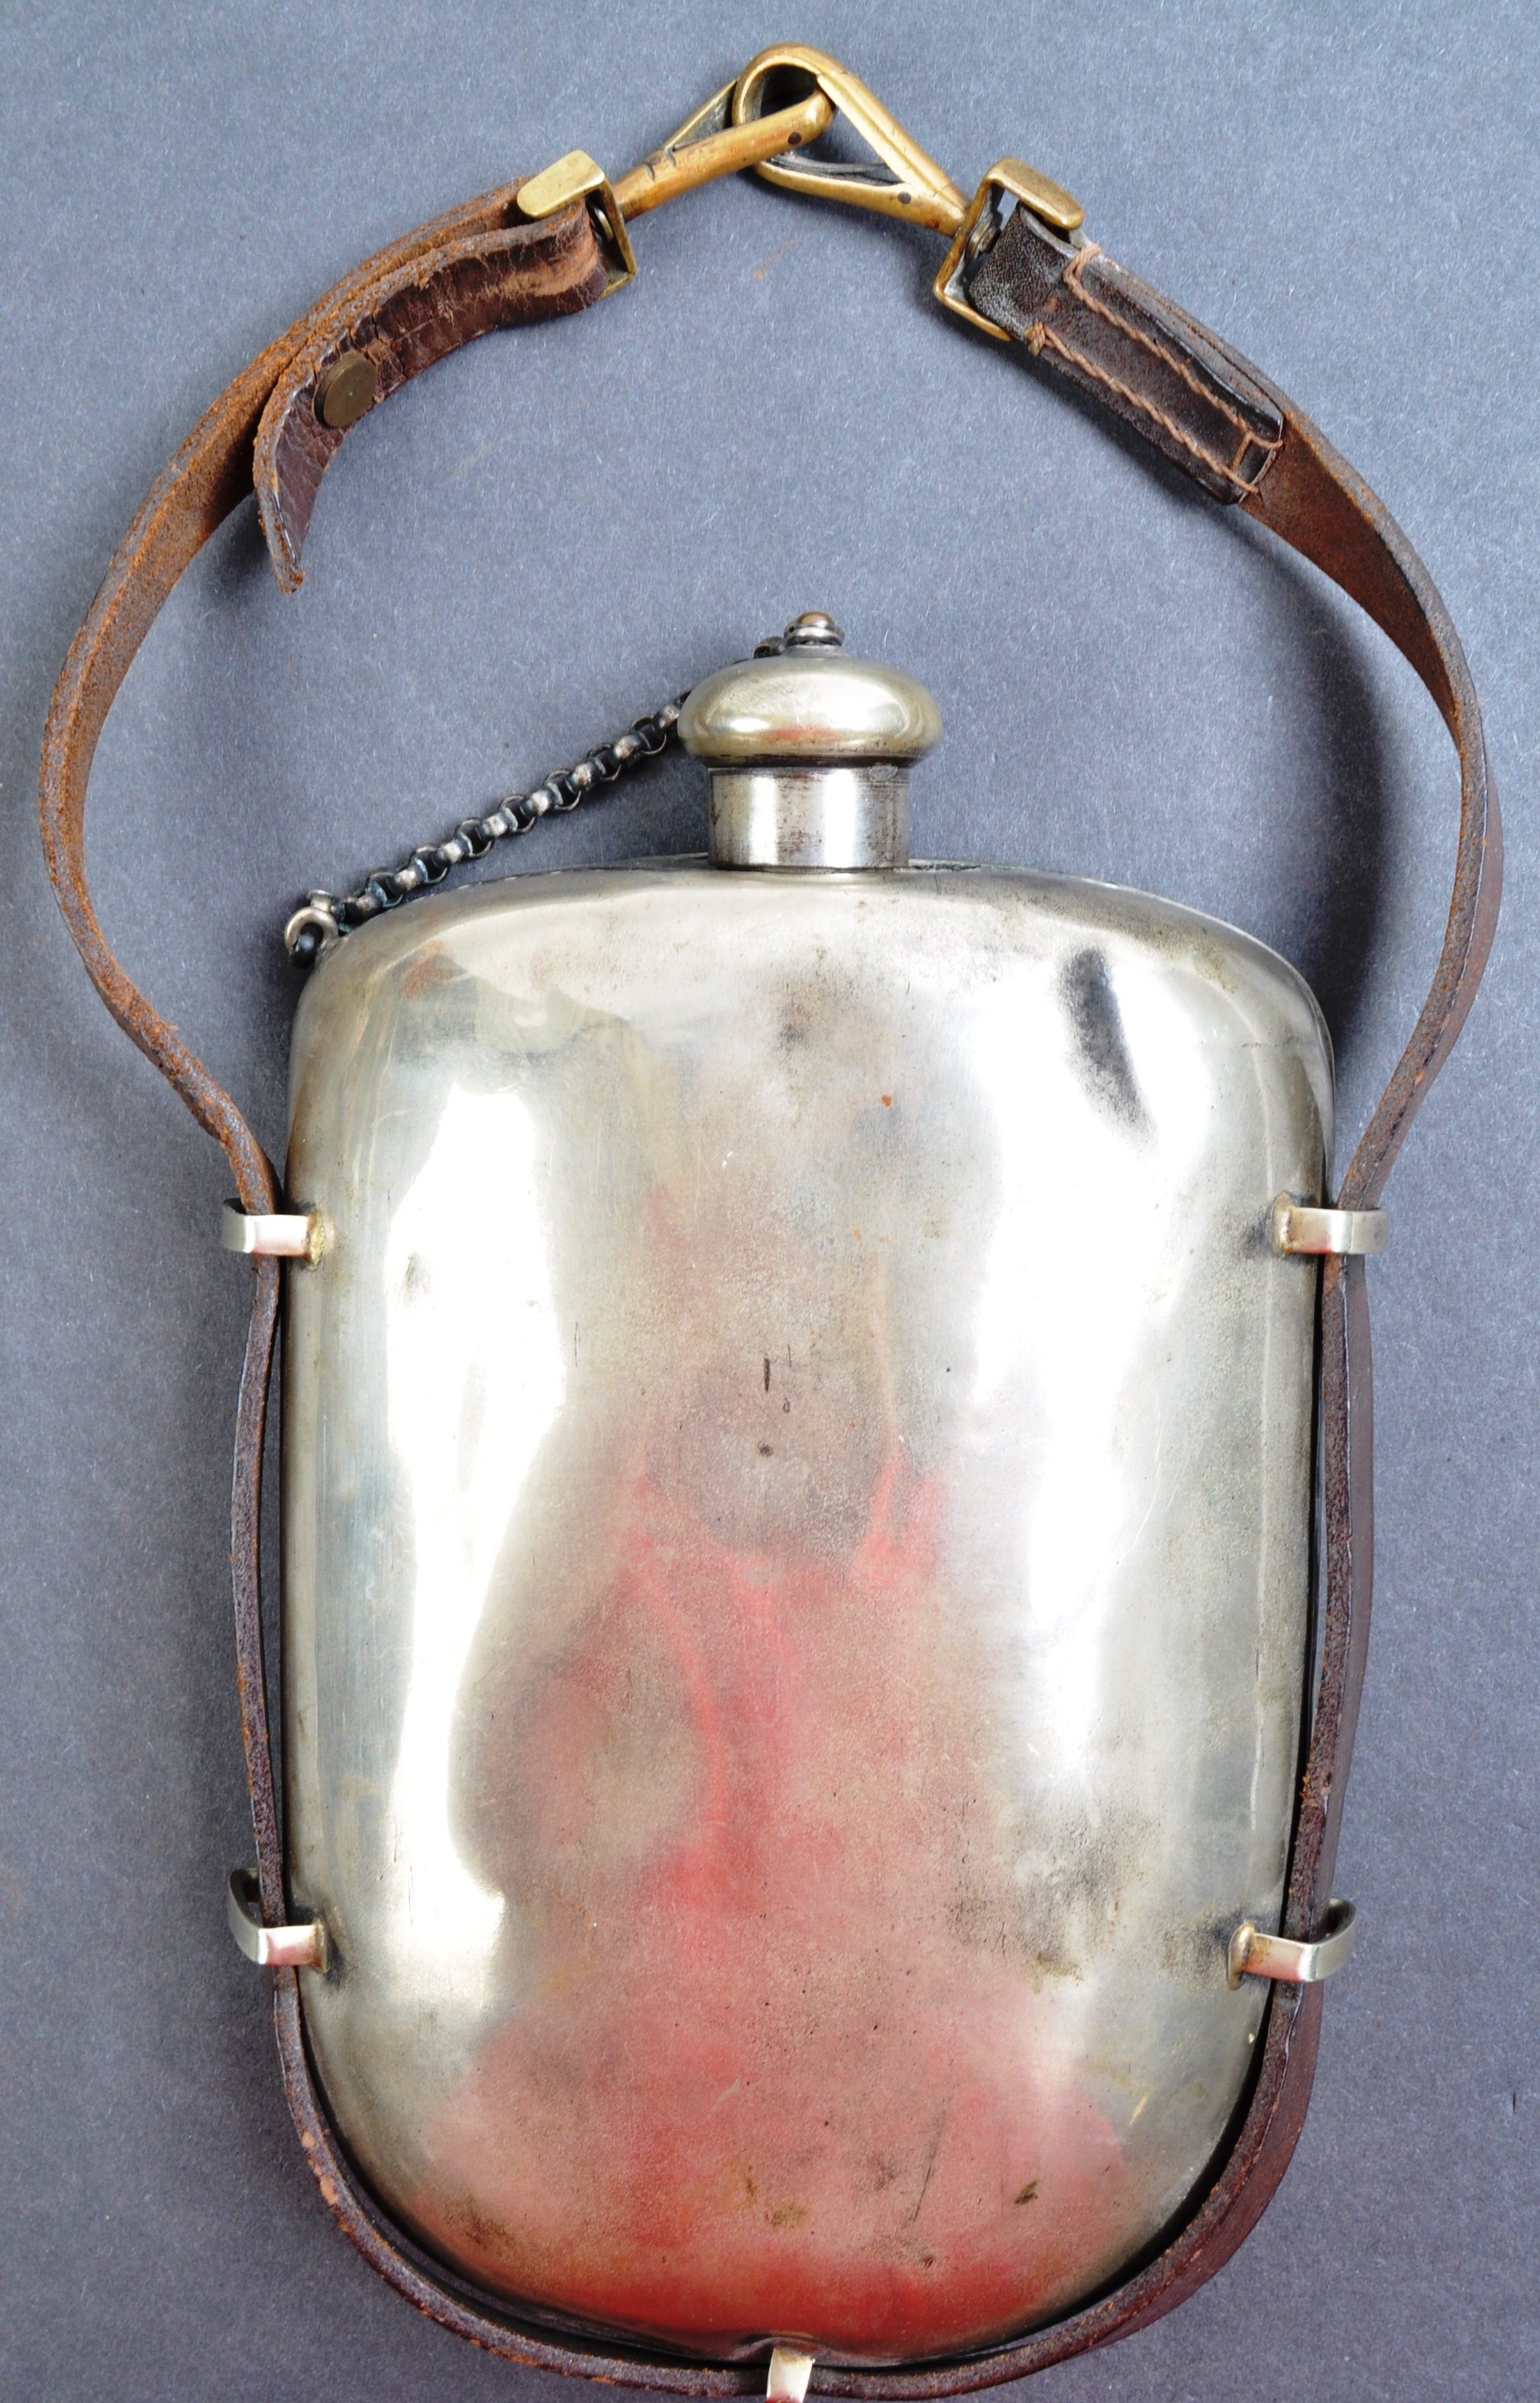 ANTIQUE LATE 19TH CENTURY BOER WAR PRIVATE PURCHASE WATER CANTEEN - Image 2 of 7